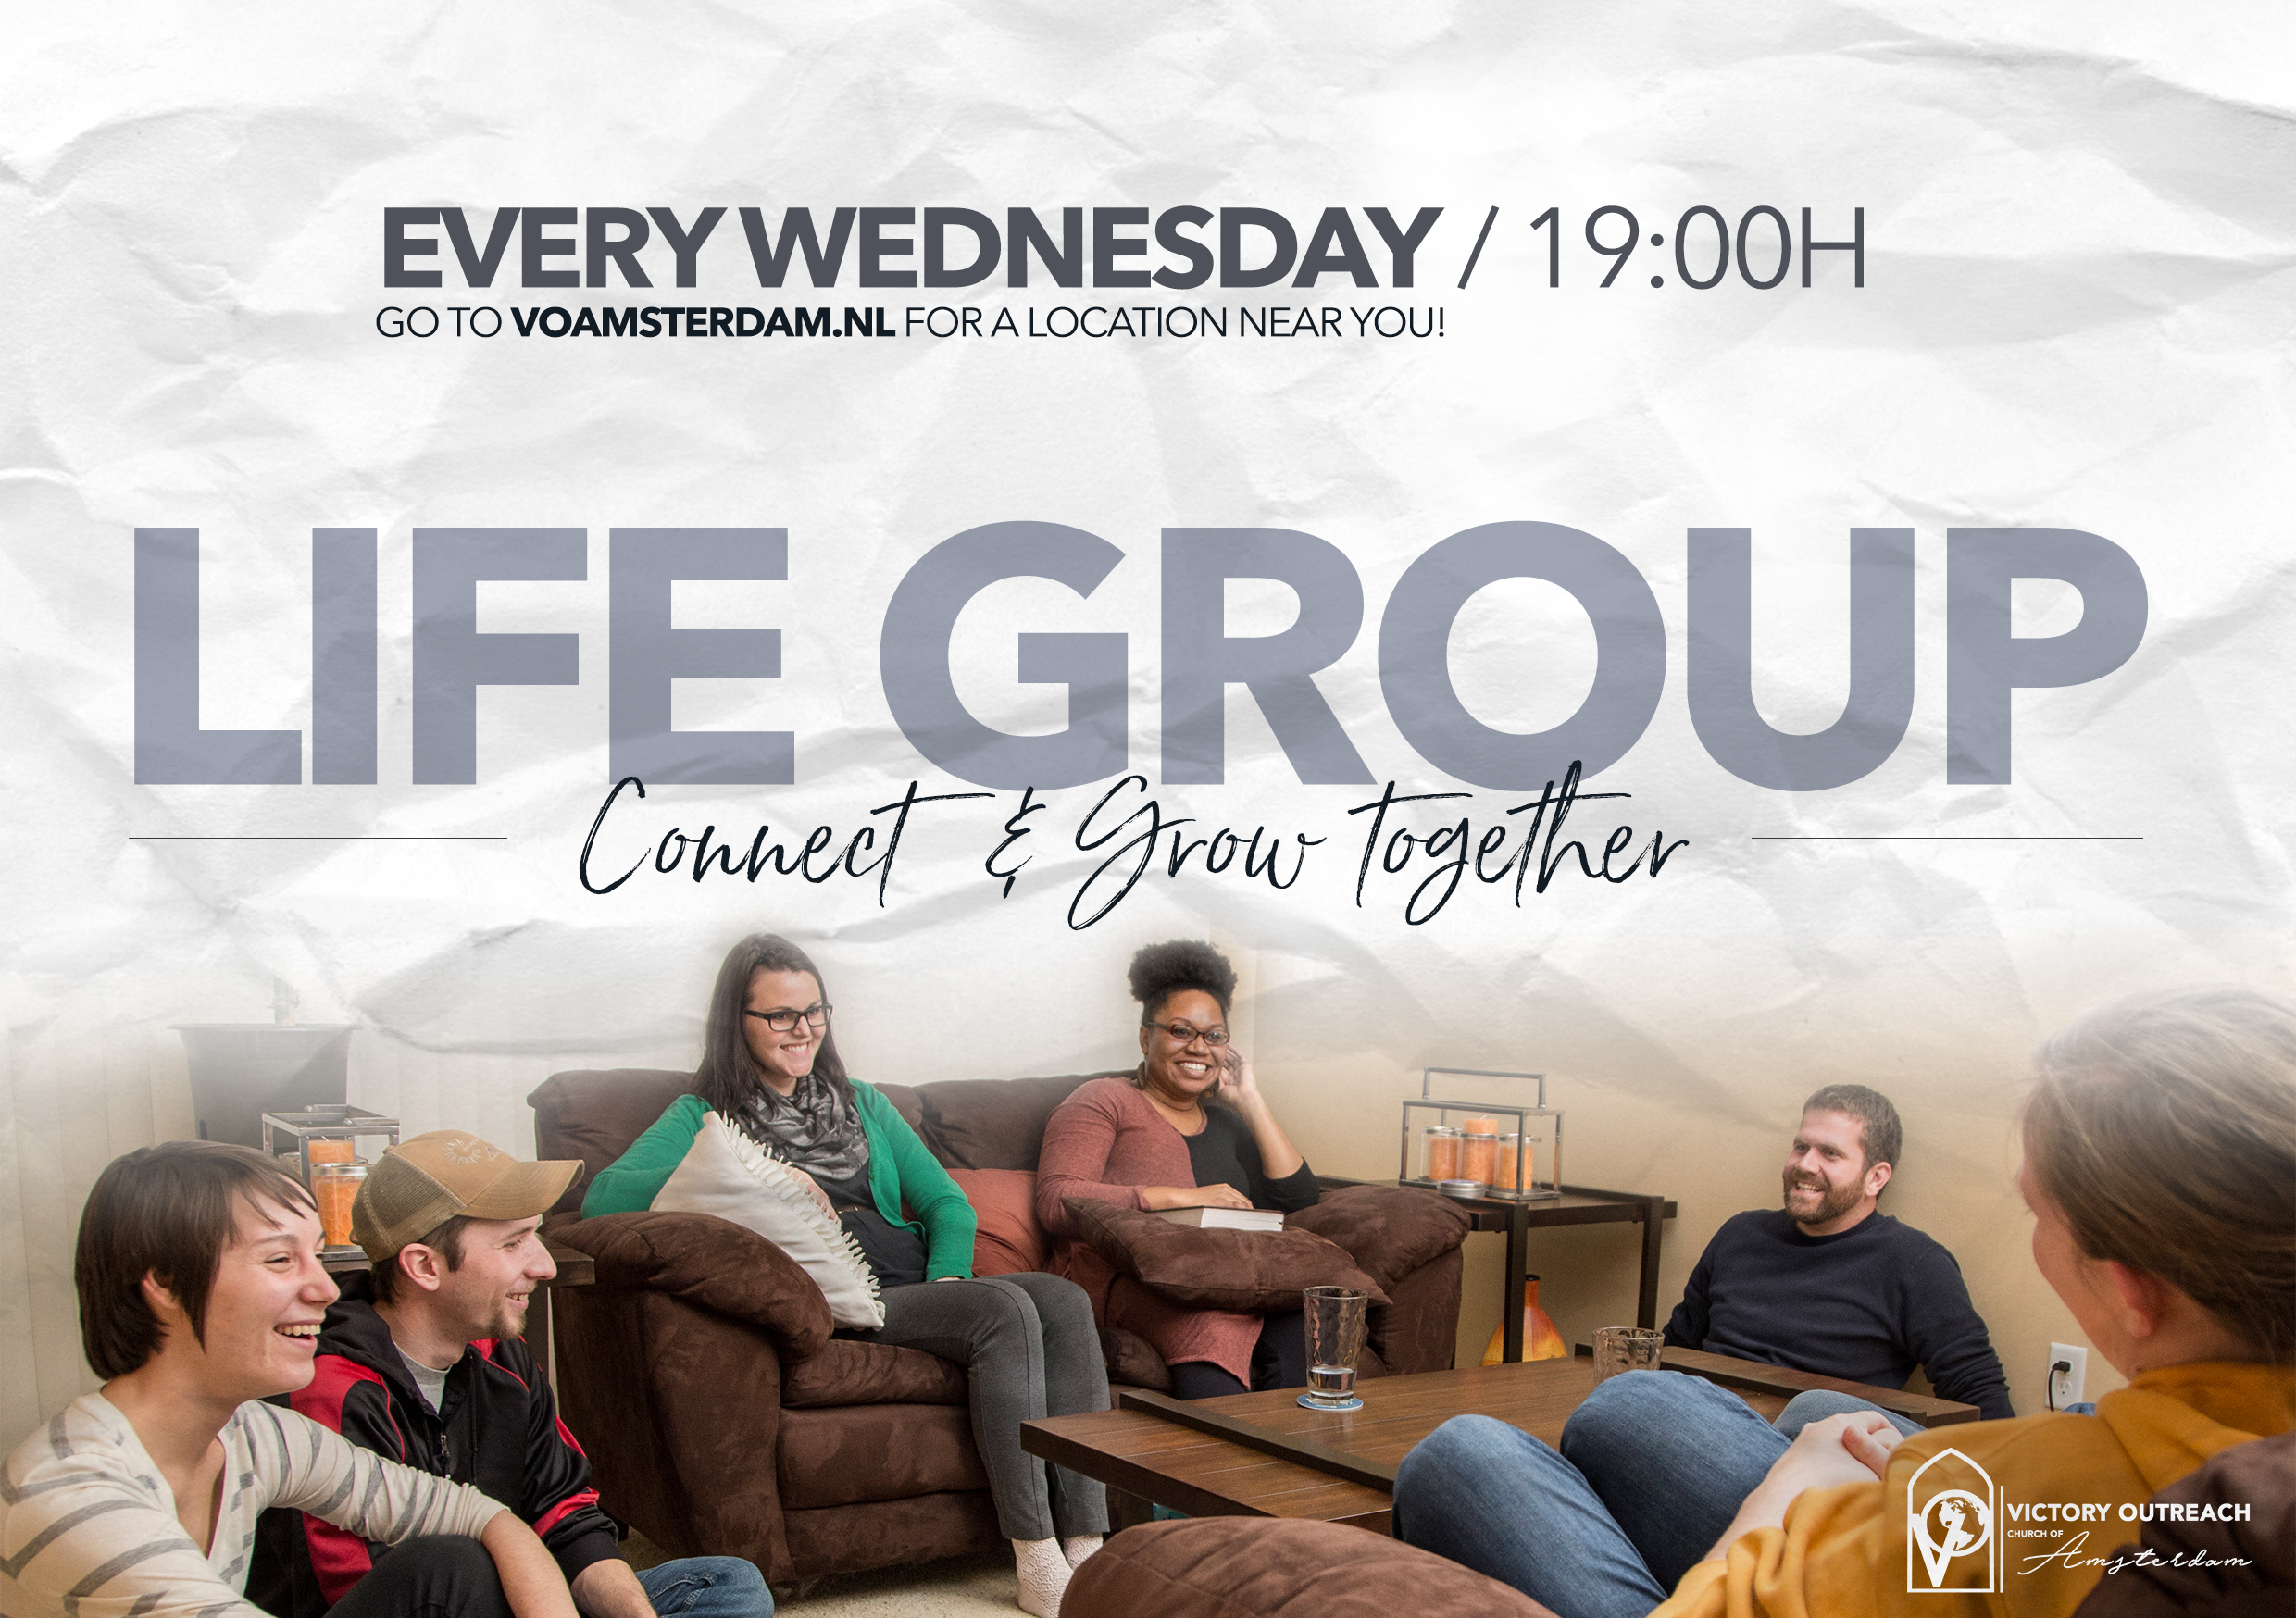 Church_Flyer_Front_Lifegroup_v2017.jpg